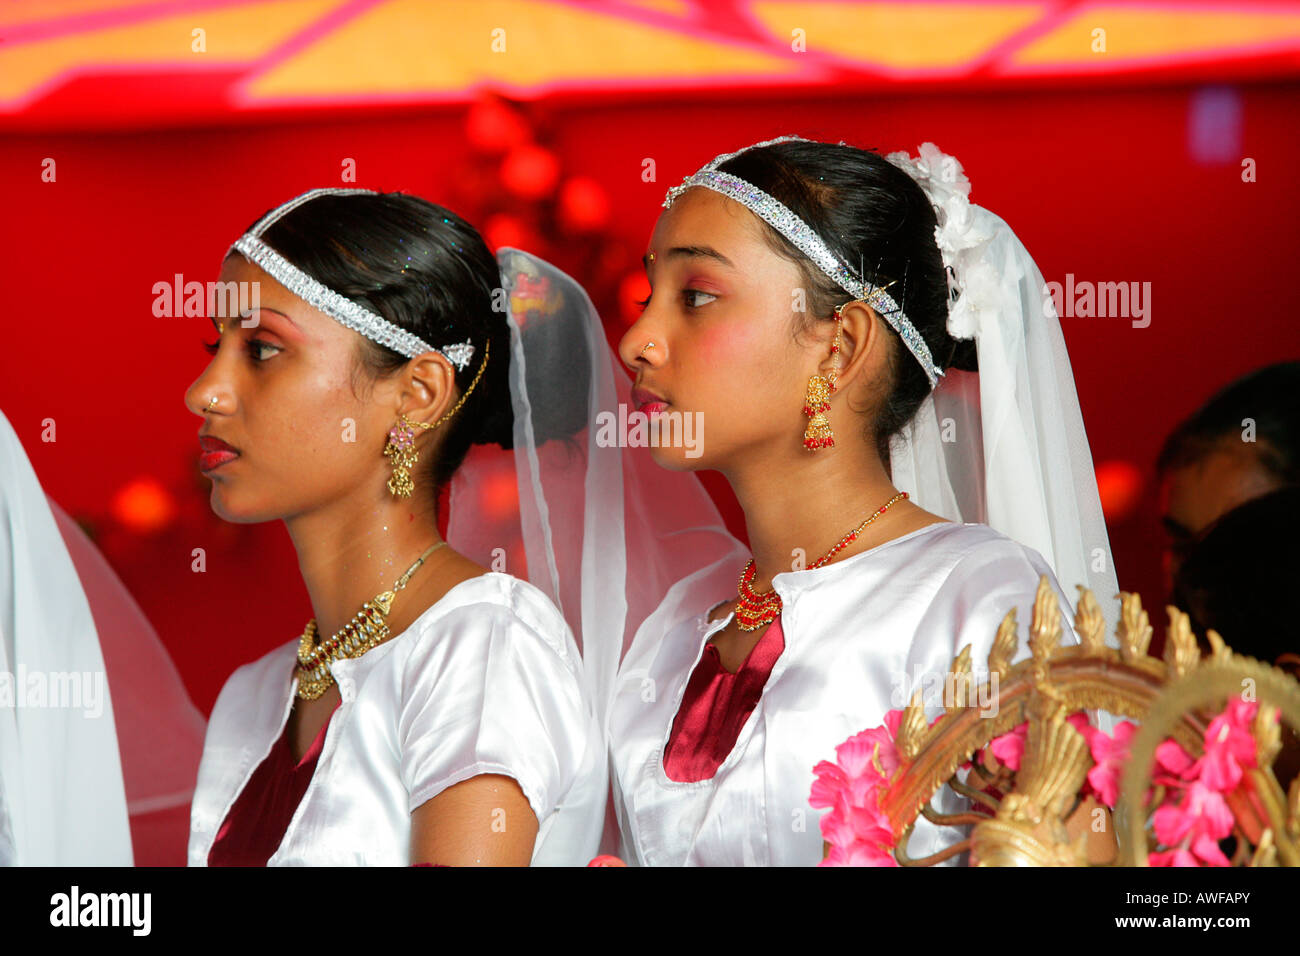 Girls of Indian ethnicity with Shiva figure at a Hindu Festival in Georgetown, Guyana, South America - Stock Image